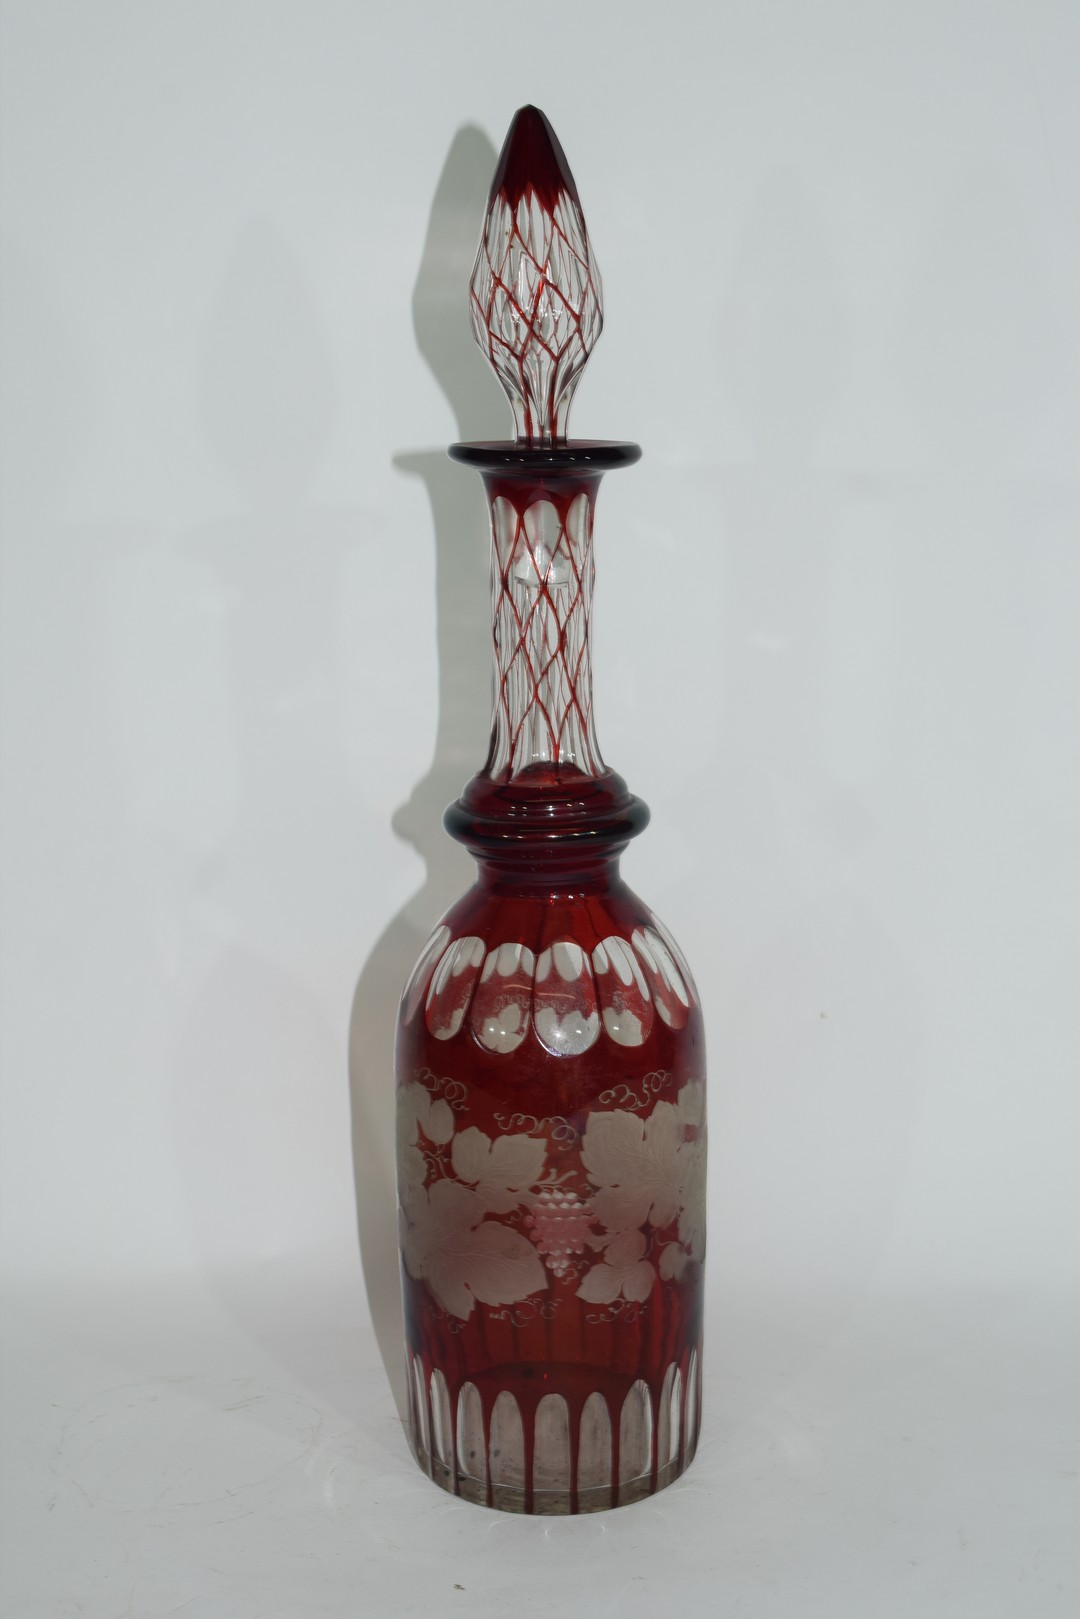 Bohemian style glass decanter and tear drop stopper